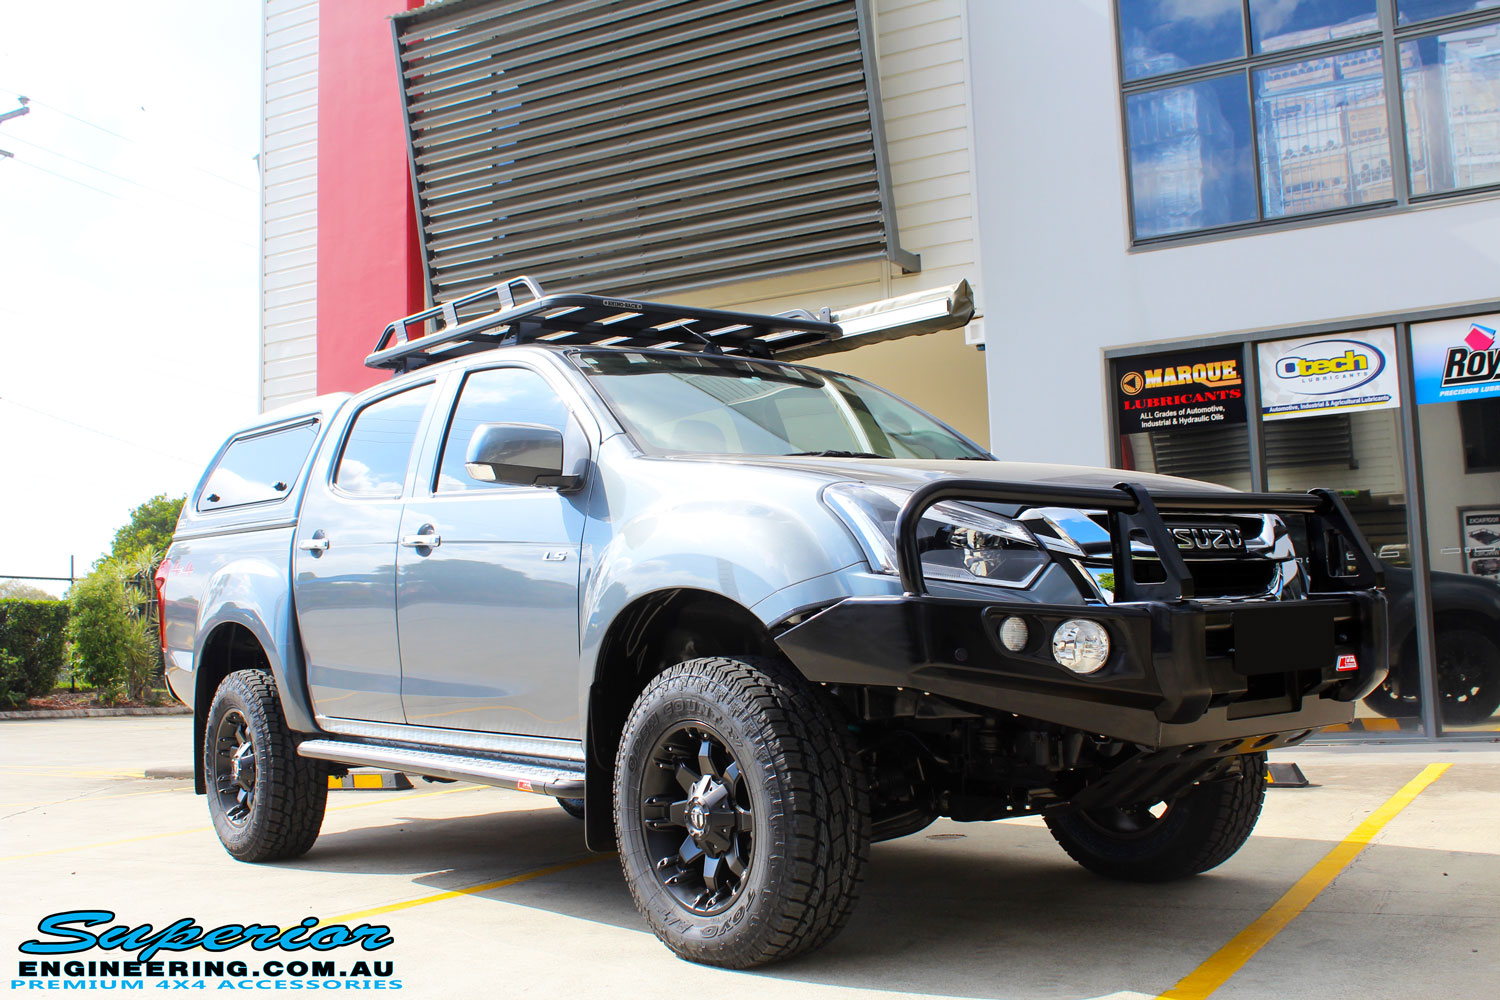 "Right front side view of a Grey Isuzu D-Max Dual Cab after fitment of a Superior Nitro Gas 2"" Inch Lift Kit, MCC Drawer System, MCC 4x4 Bullbar, Hayman Reece Towbar, MCC 4x4 Side Steps, EGR Premium Canopy, Rhino Roof Rack & a Ironman 4x4 Instant Awning with LED's"